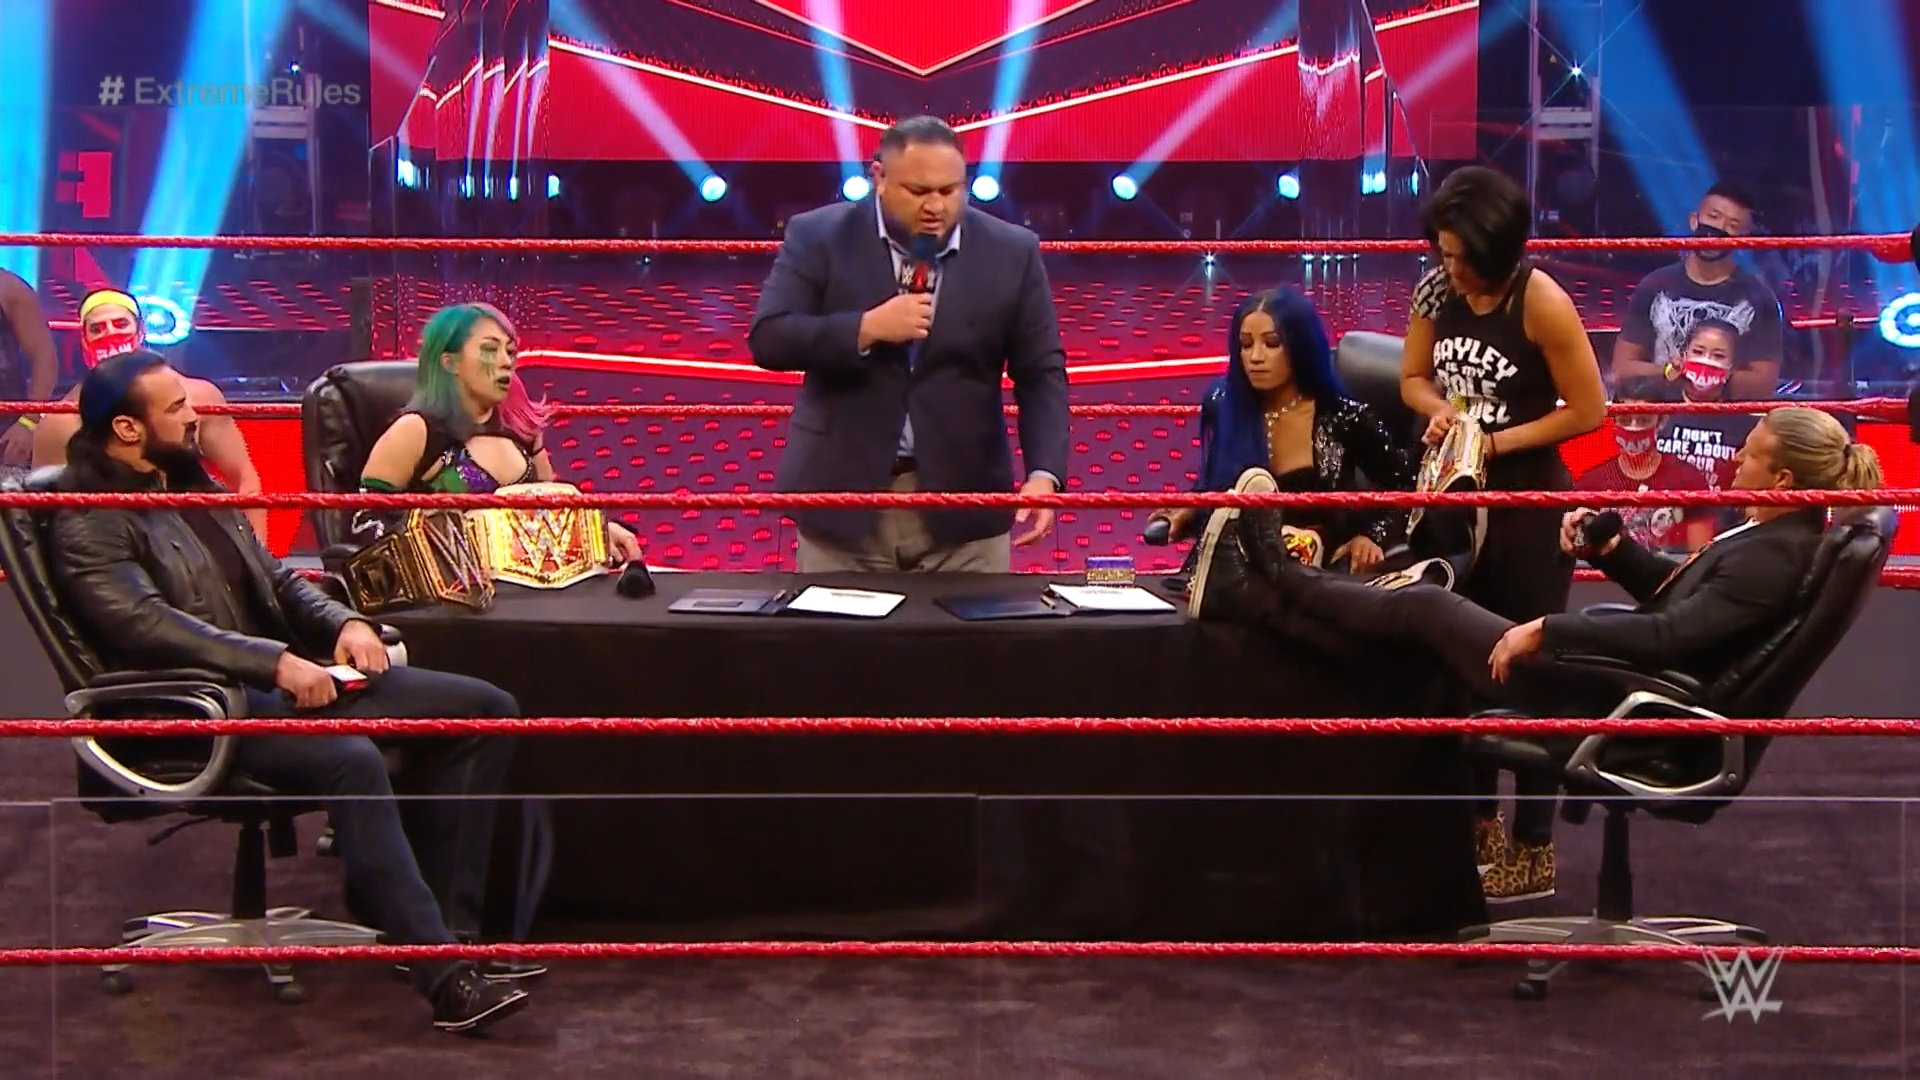 WWE RAW (June 29, 2020) | Live results | Contract signing for Extreme Rules 1